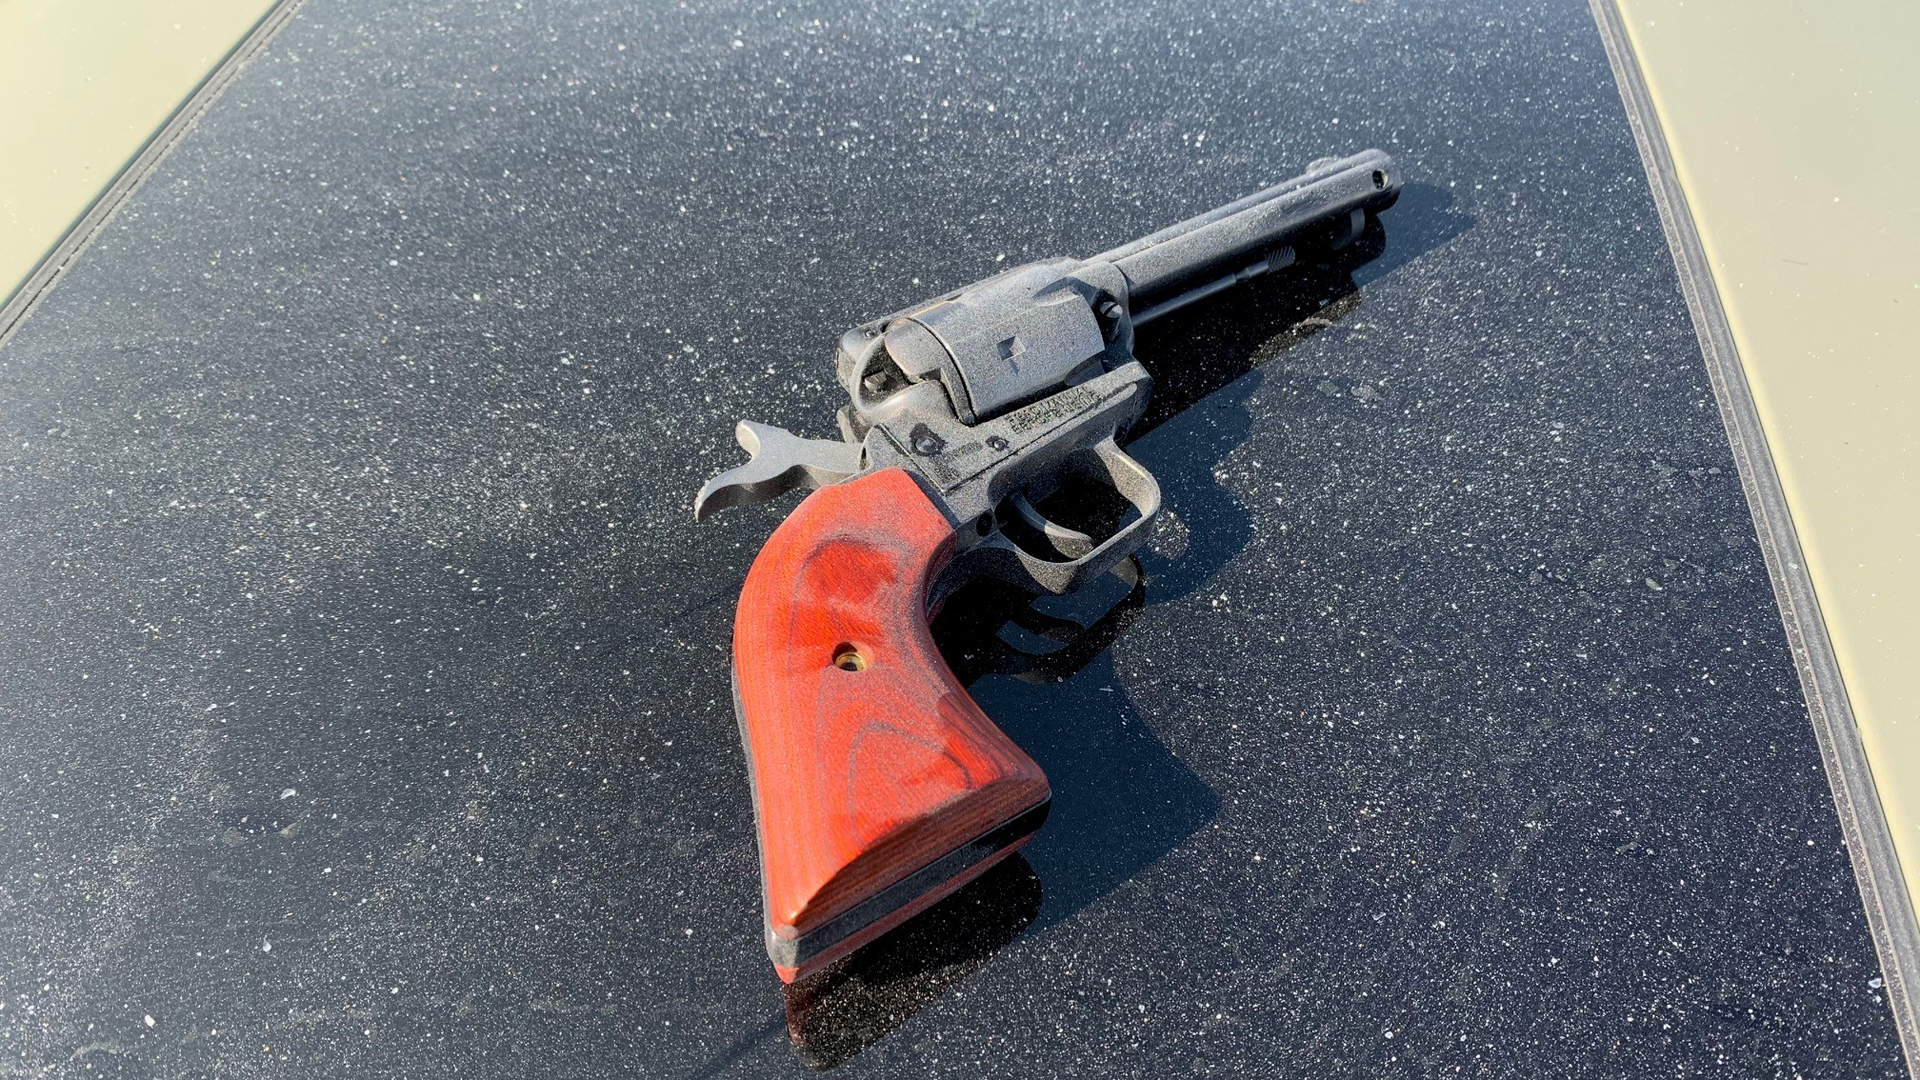 A gun recovered from the scene of a fatal CHP shooting on Oct. 22, 2020 is shown in a photo released by the San Bernardino County Sheriff's Department.